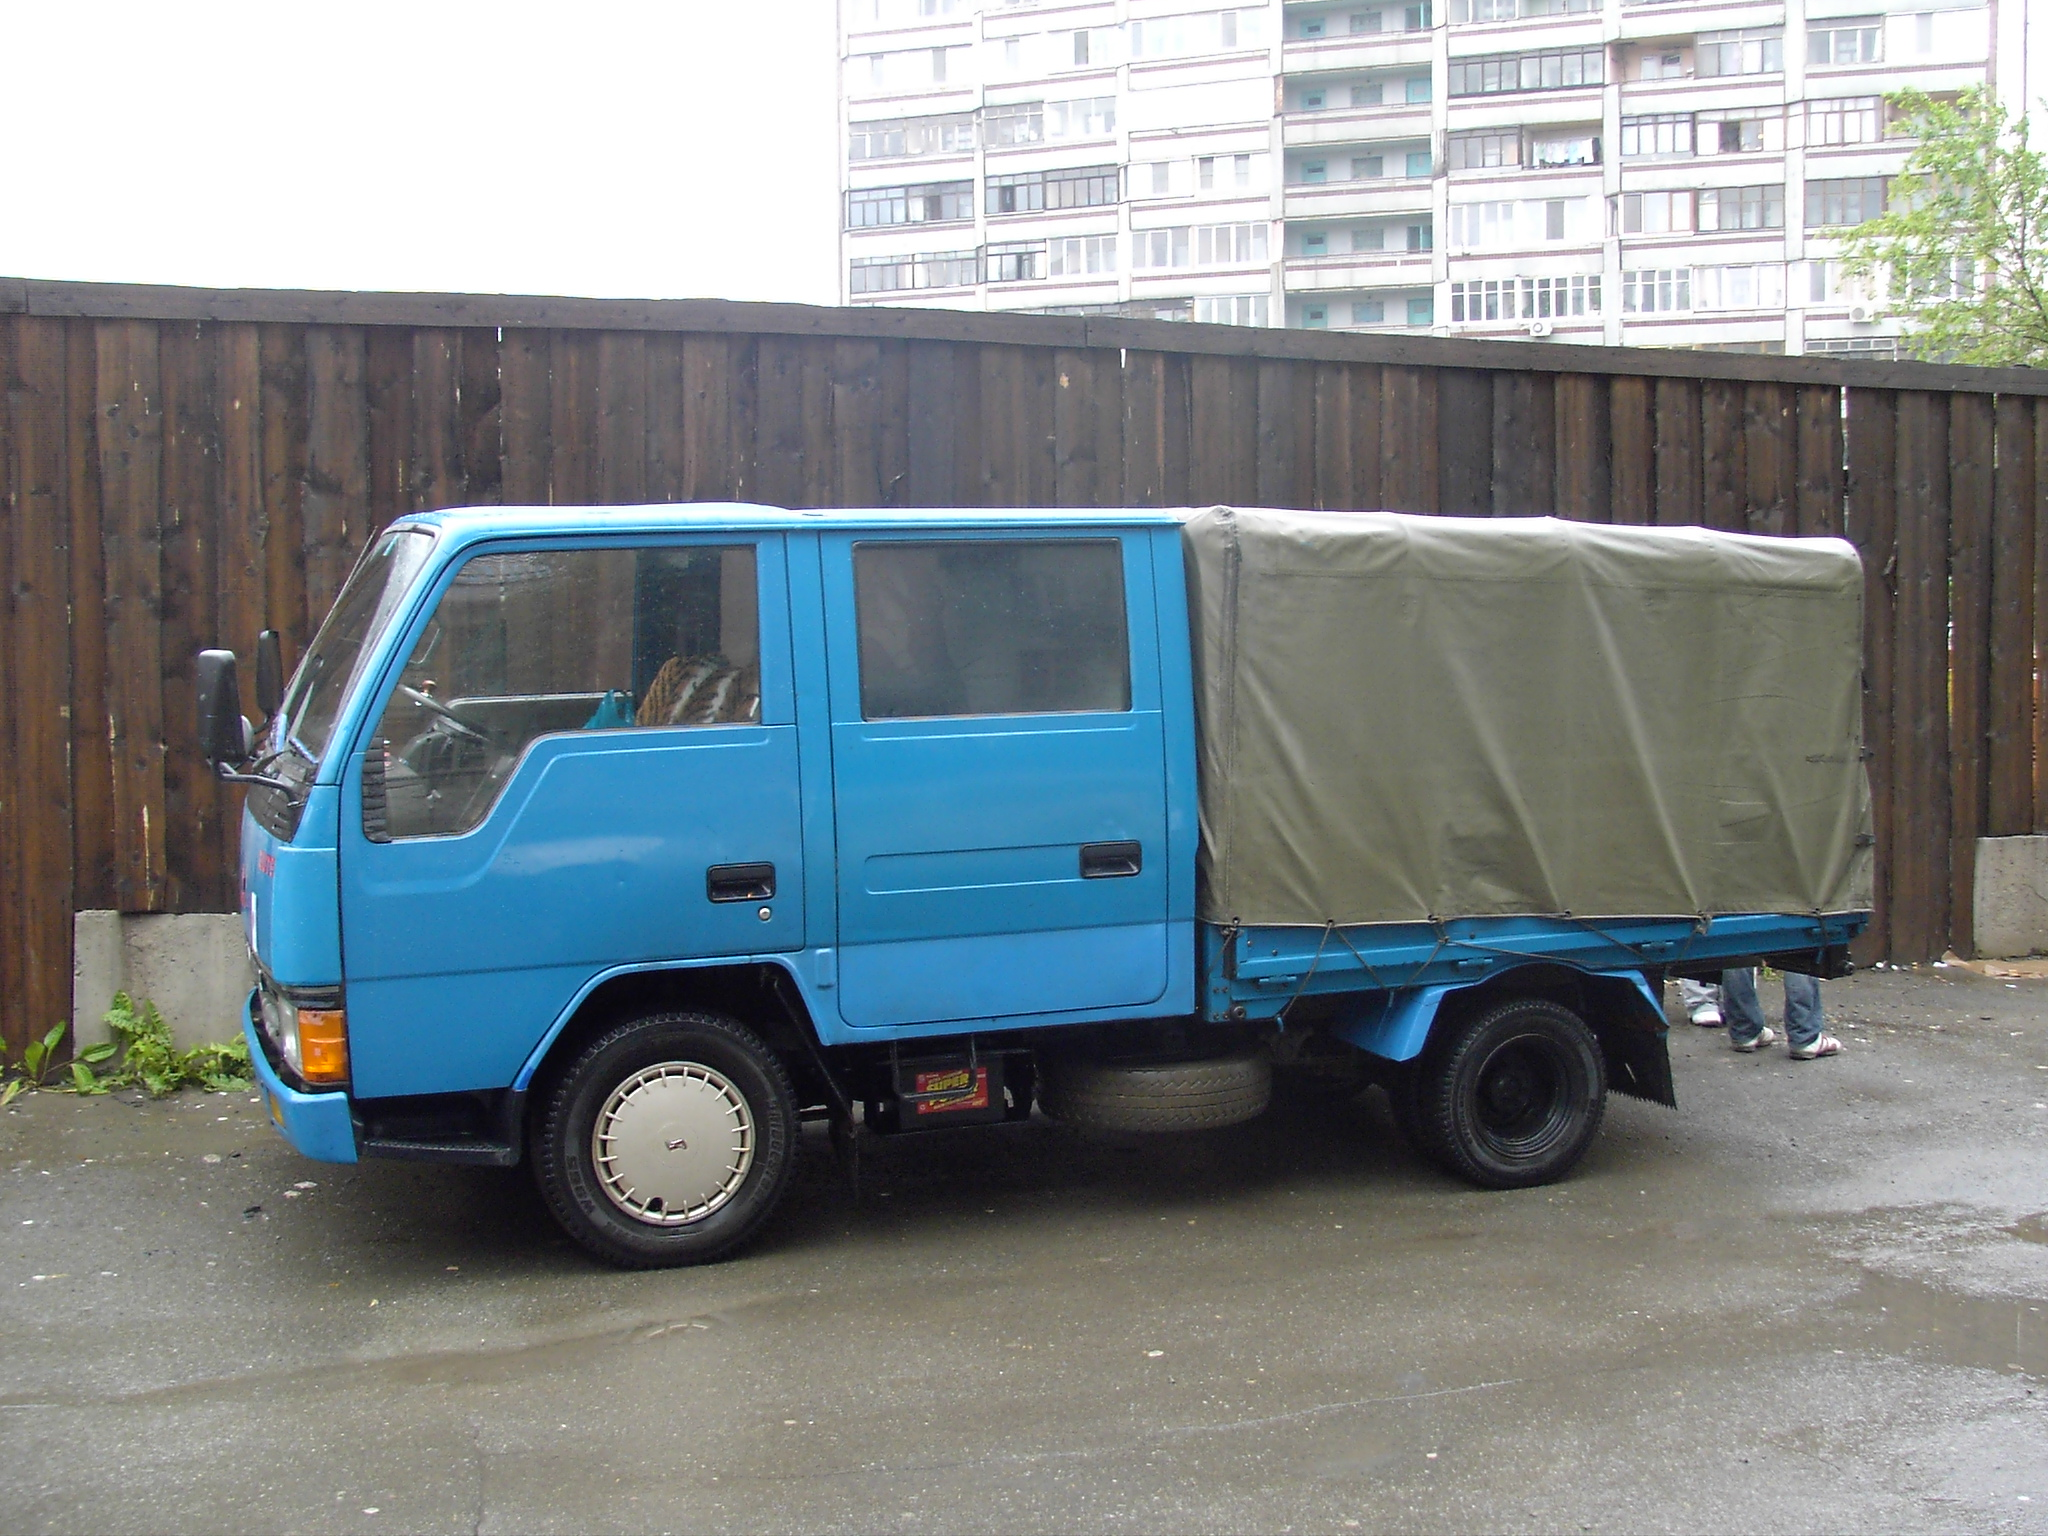 Canter truck sale double cabin 4wd japan import jpn car - 1990 Mitsubishi Canter